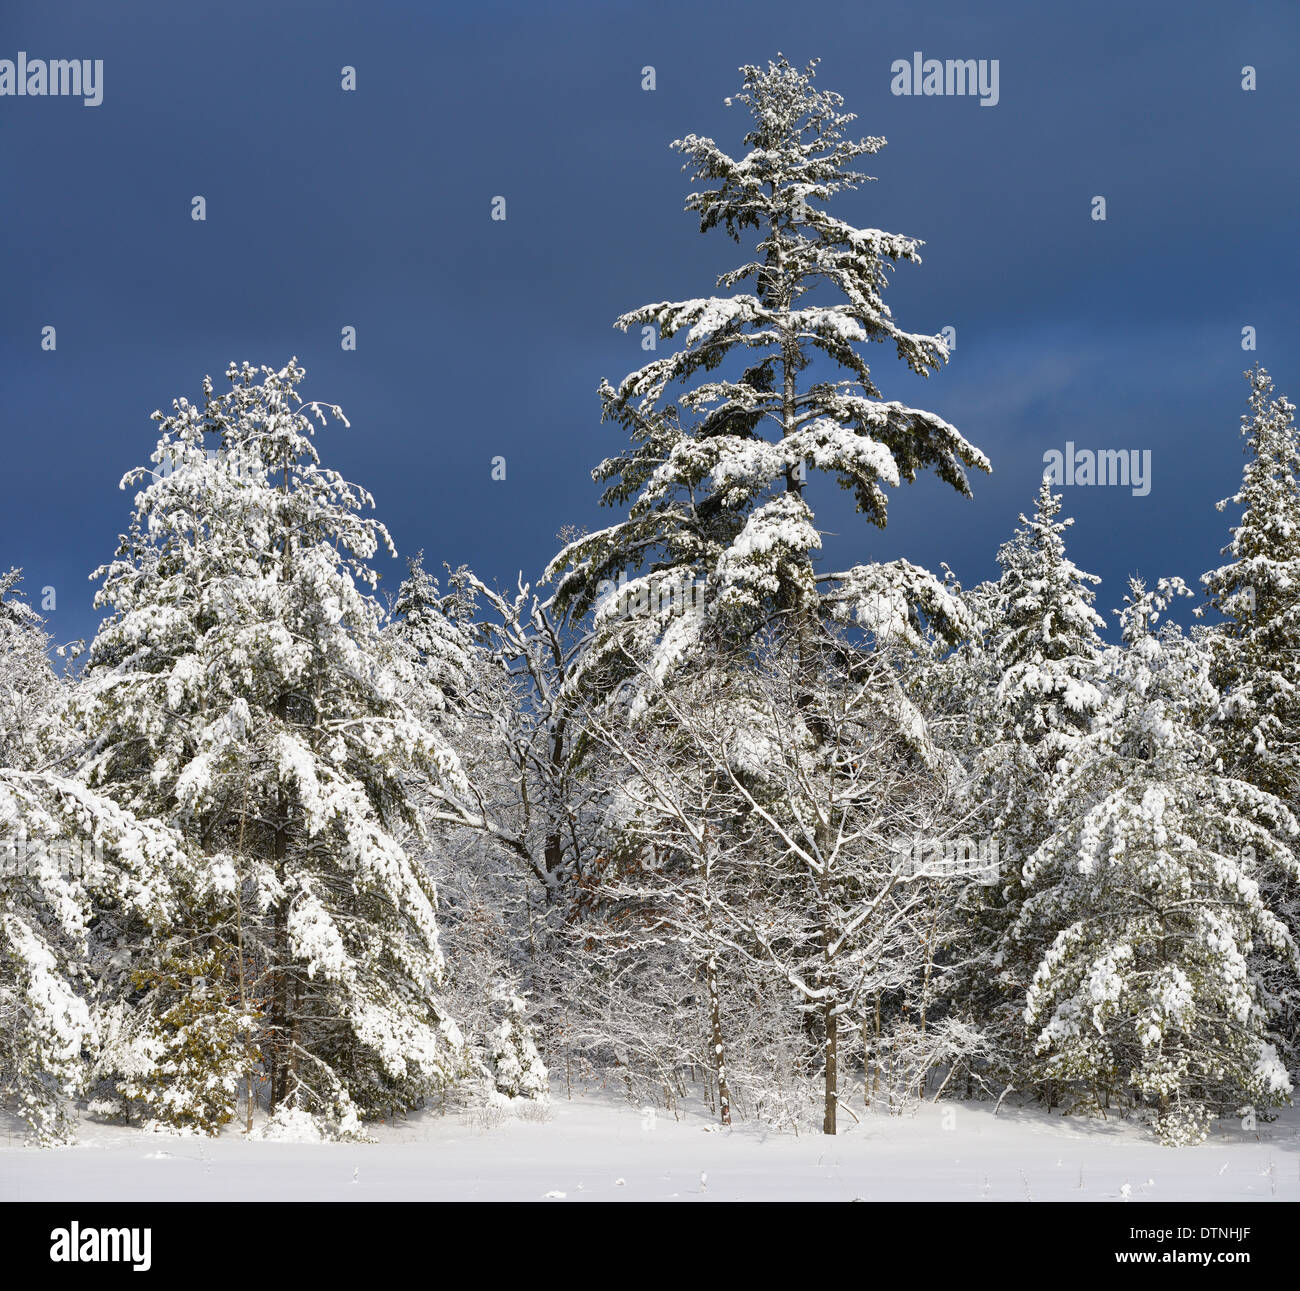 Snow covered evergreen trees in winter with dark sky in Marmora Ontario Canada - Stock Image